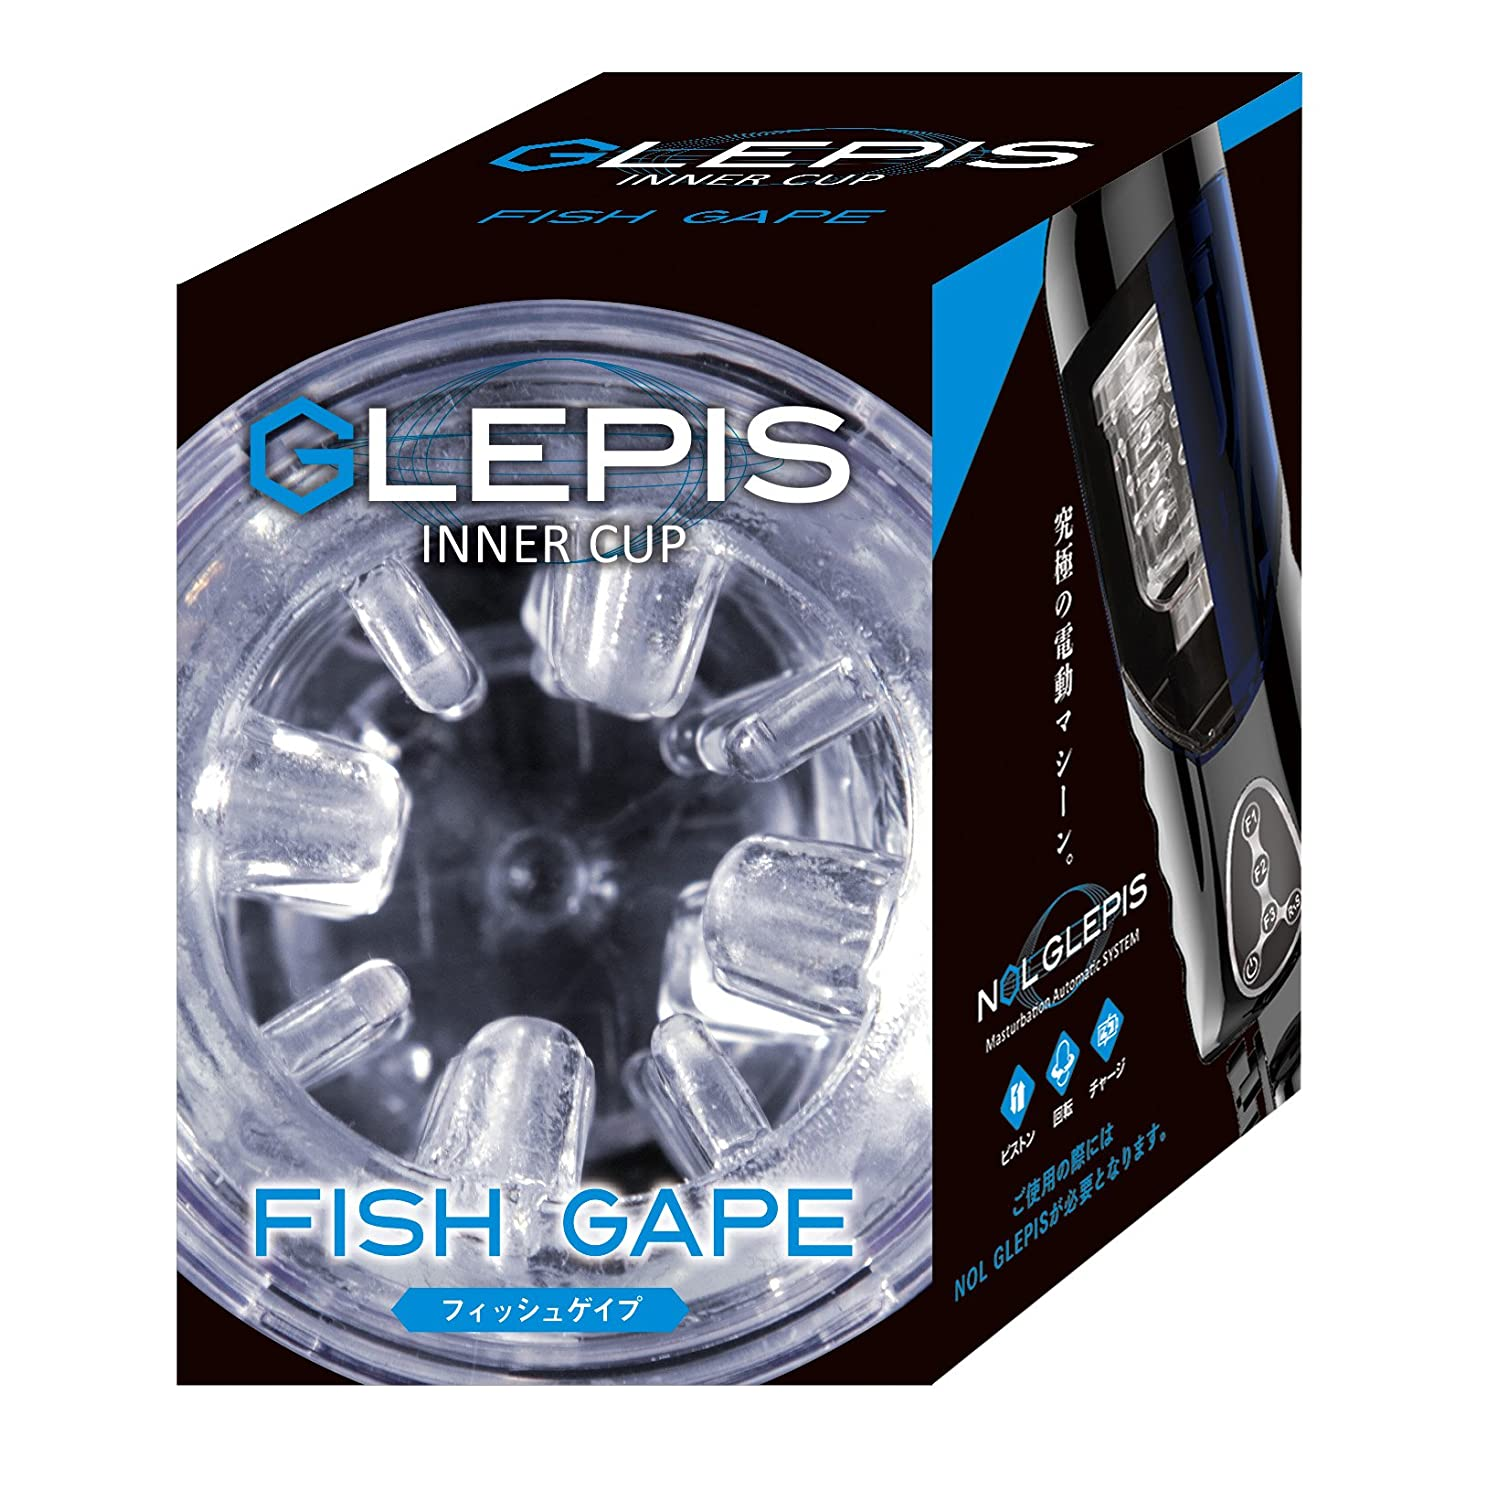 JAPAN-TOYZ GLEPIS INNER CUP 07 魚鱗